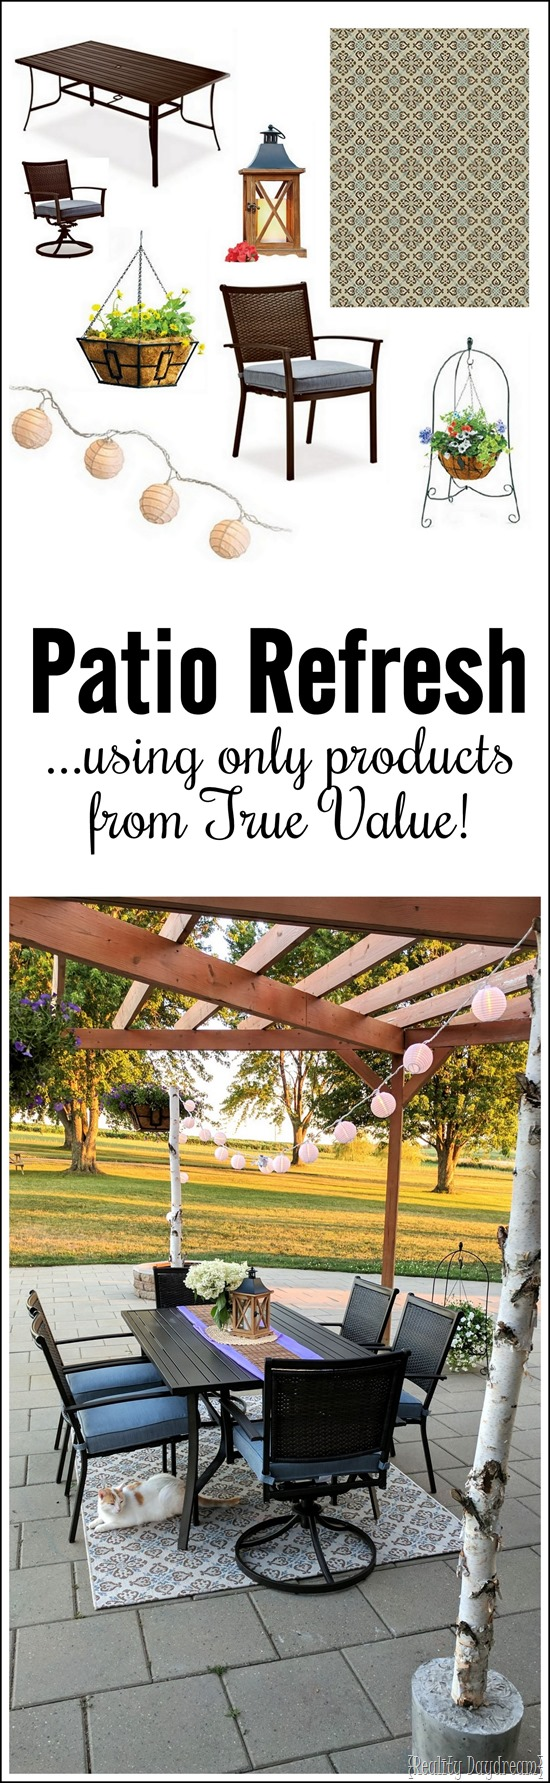 You can furnish and decorate you whole patio or outdoor space with True Value products! {Reality Daydream}